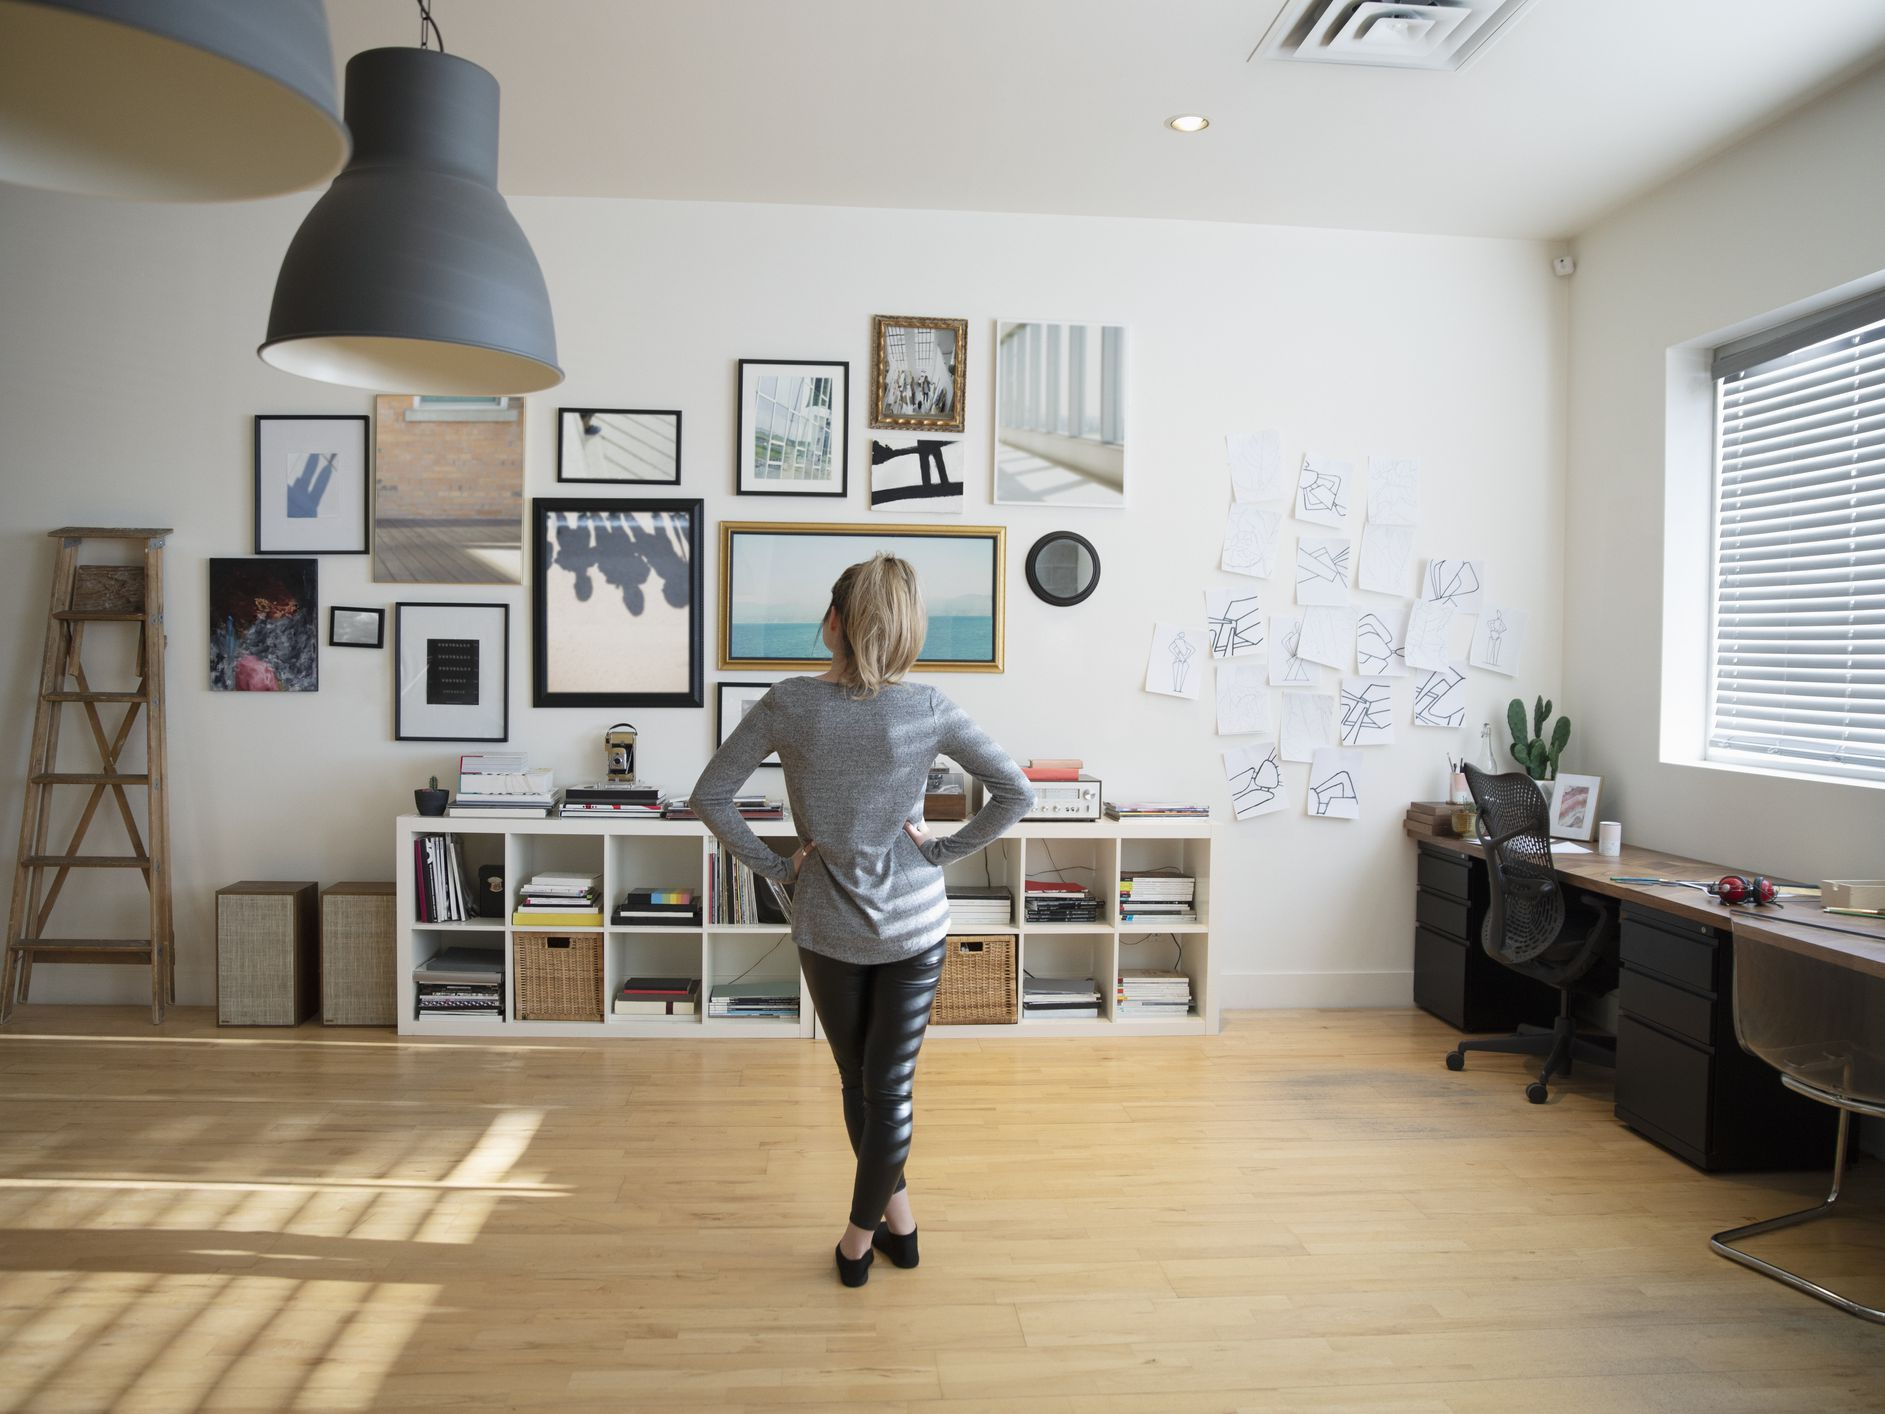 The 10 Best Home Decorating Apps Of 2020